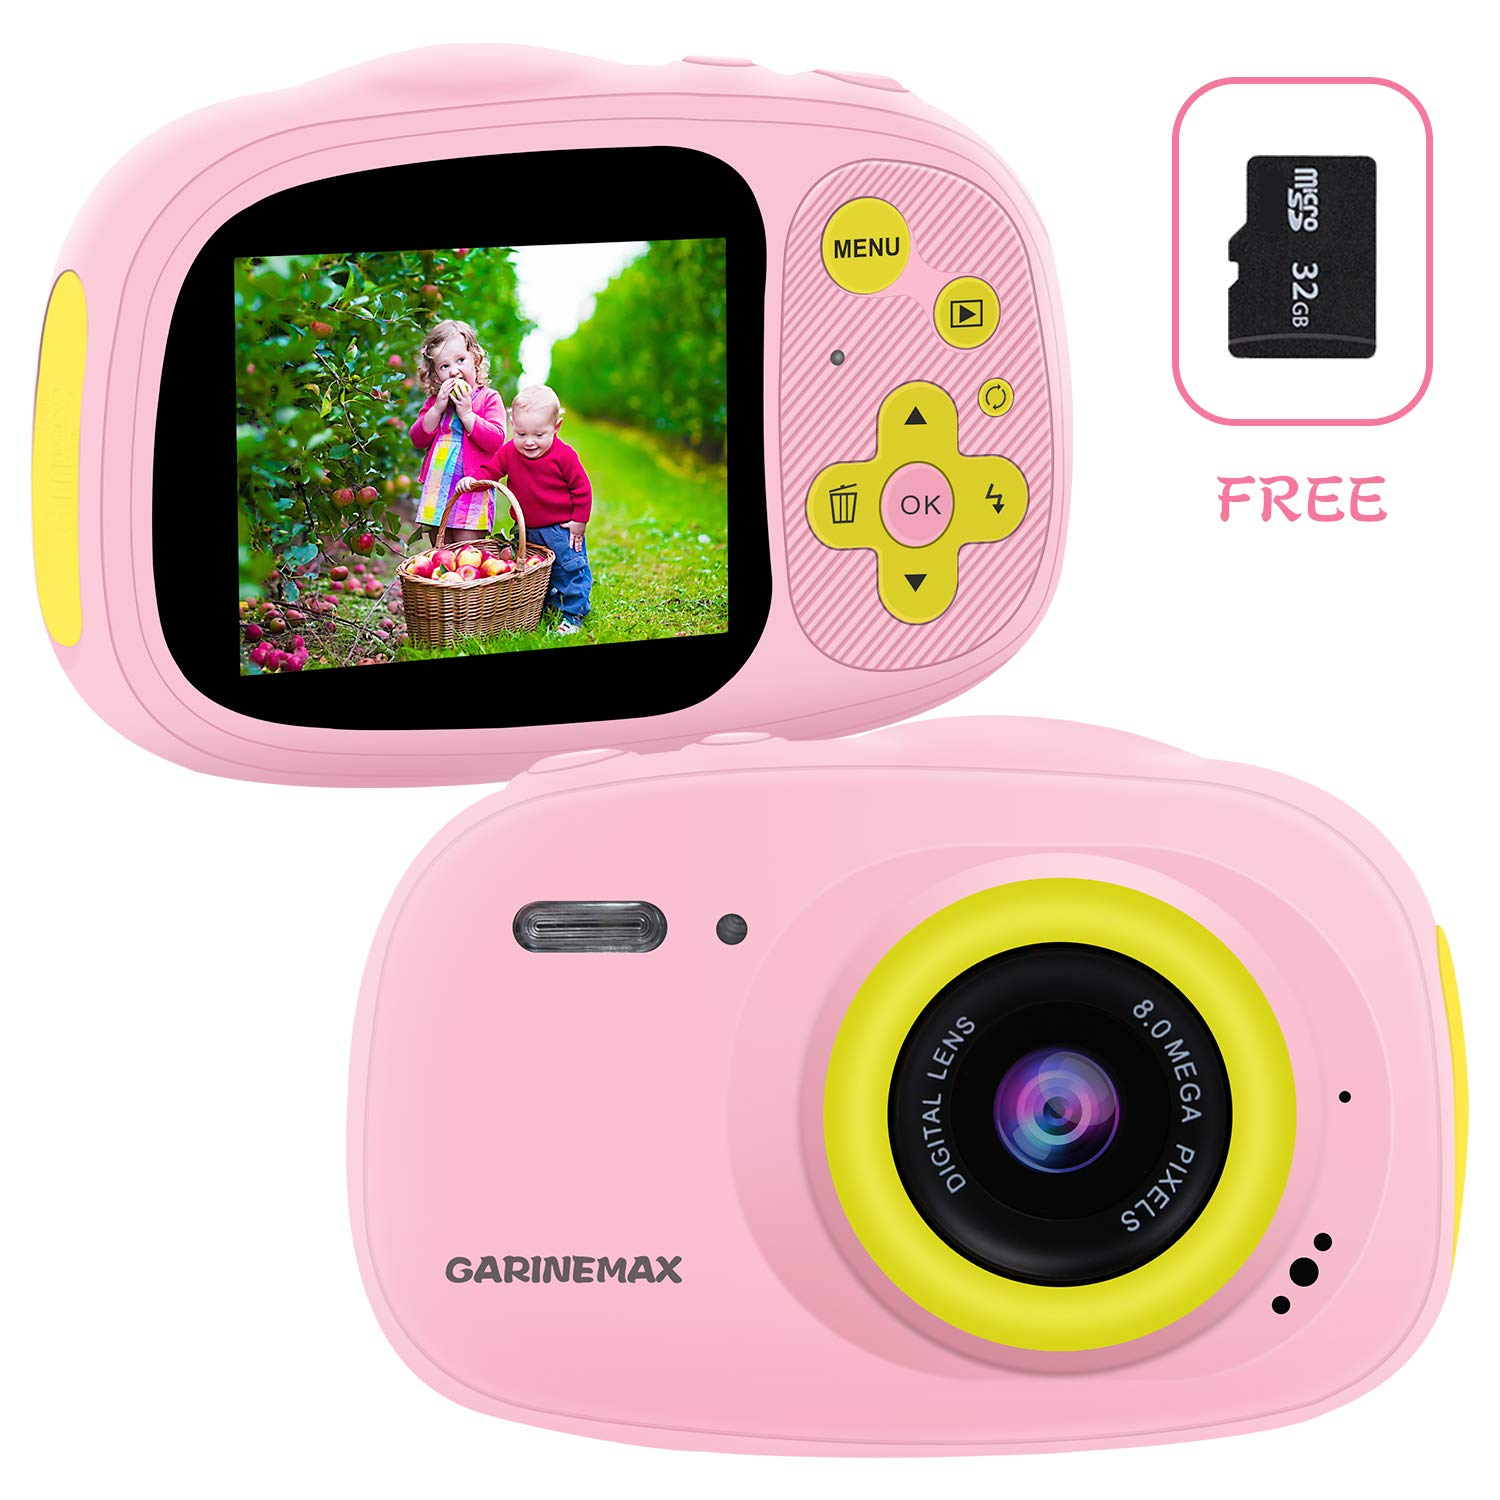 Kids Camera, IP68 Waterproof Camera for Kids, HD 1080P Underwater Camera for Children with 32GB SD Card / MP3 / MP4 / Games Function, Extra Stickers, Bag and Lanyard Digital Camera for Girls Boys Gift by GARINEMAX